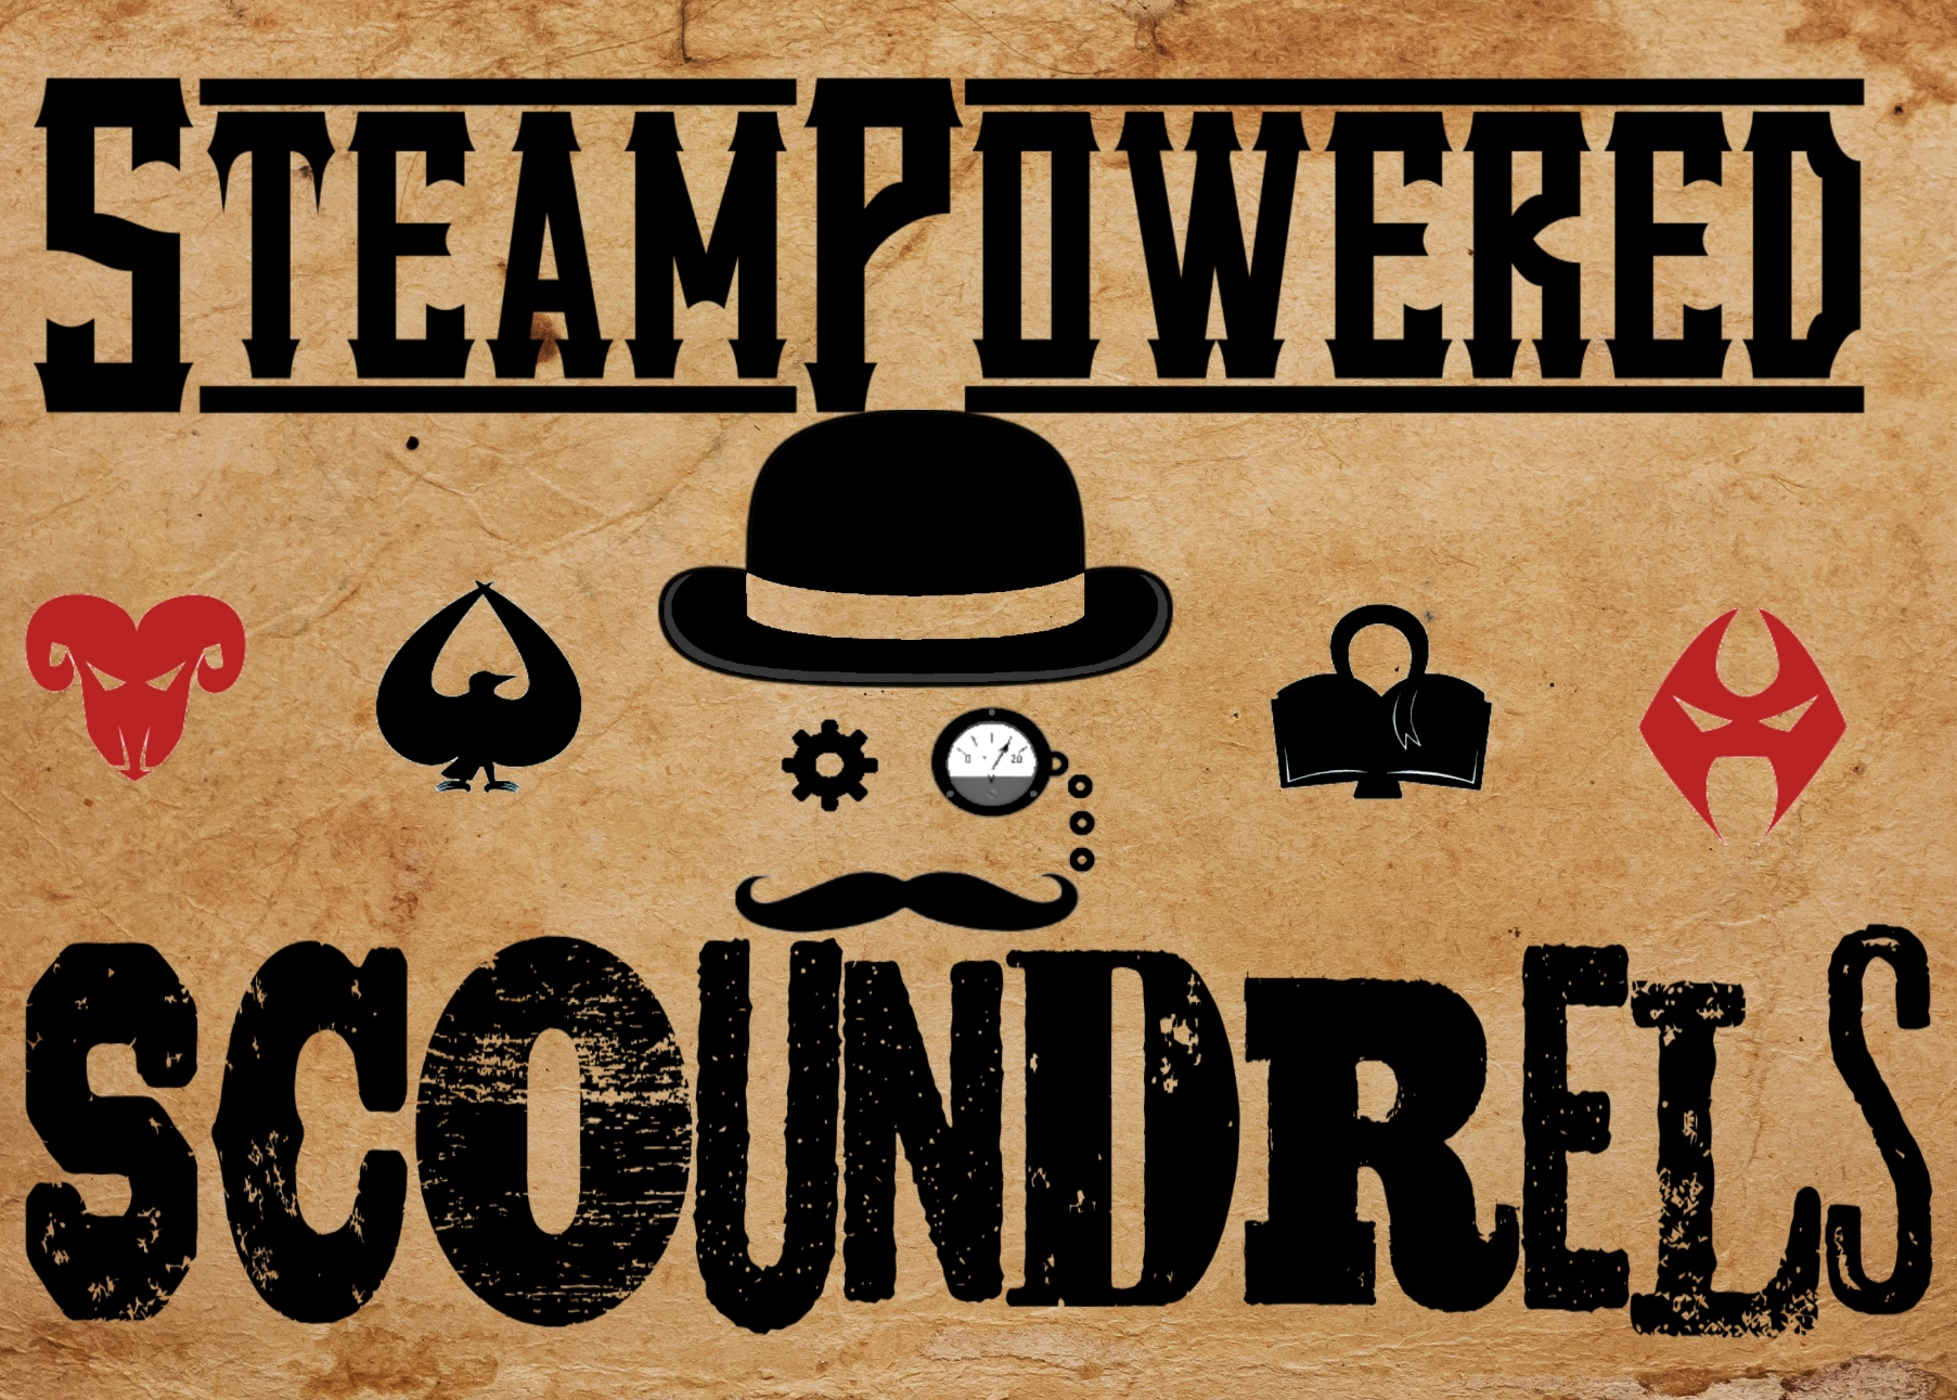 Steam Powered Scoundrels Episode 36 - Goon Squad